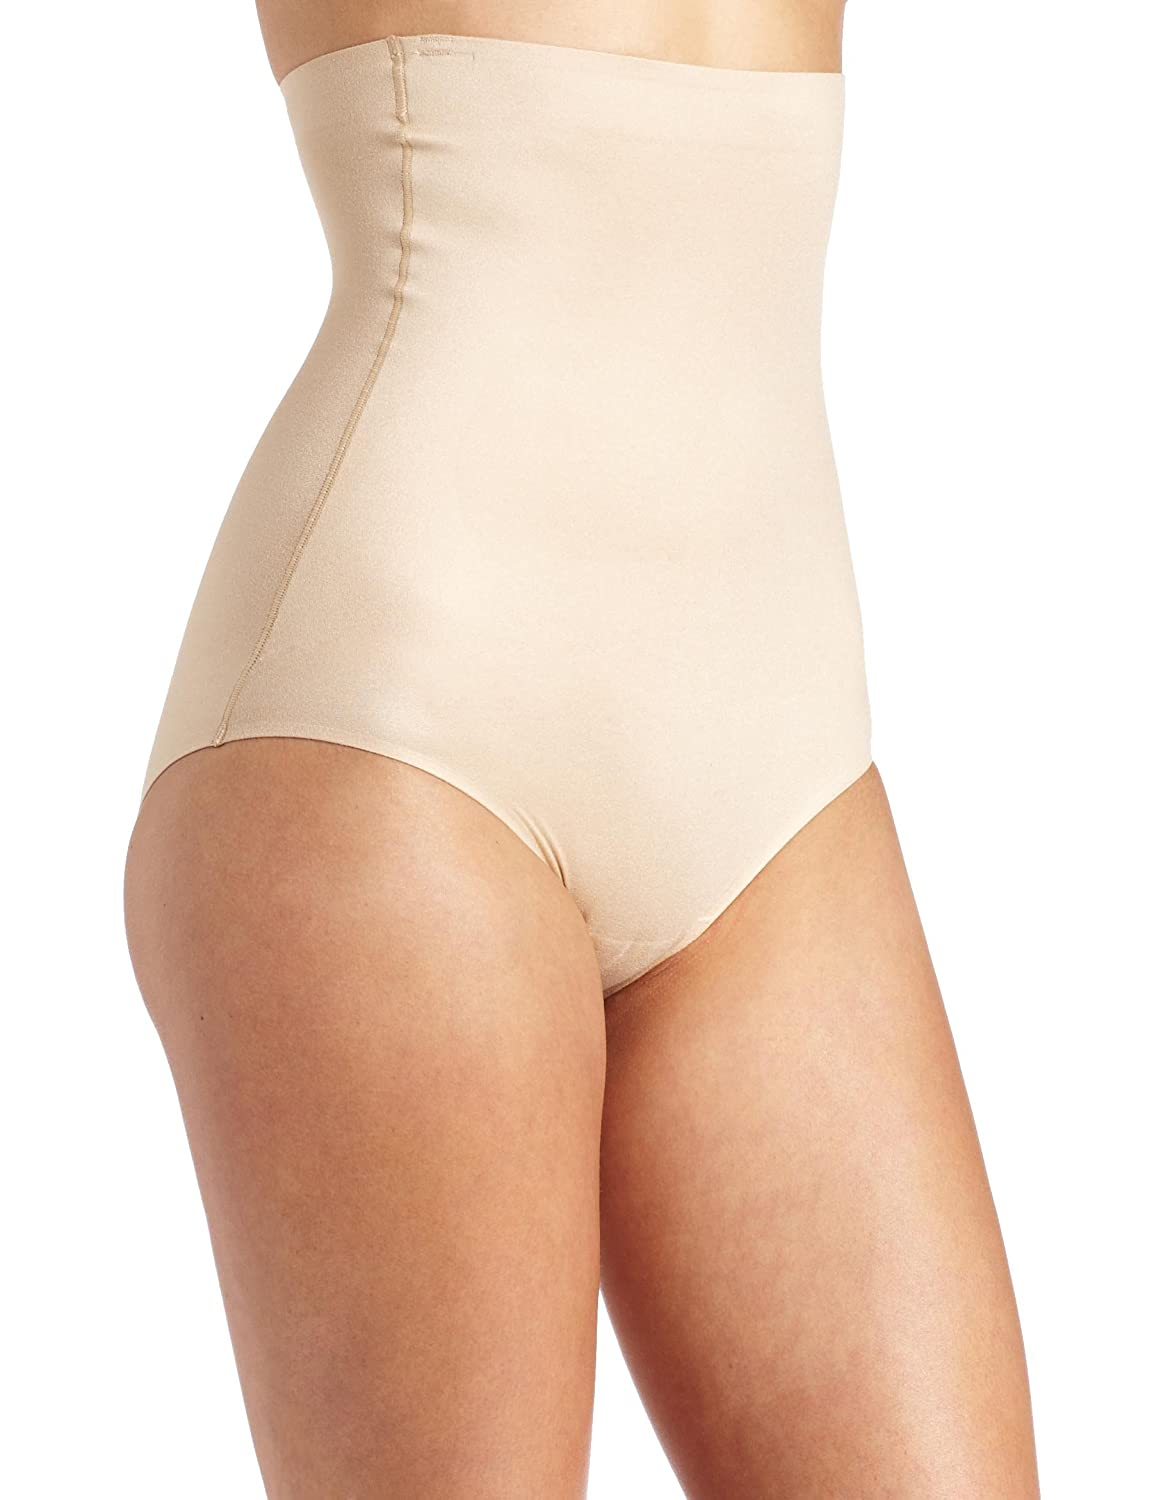 Wacoal Sensational Smoothing Medium Control High-Waist Brief 808158